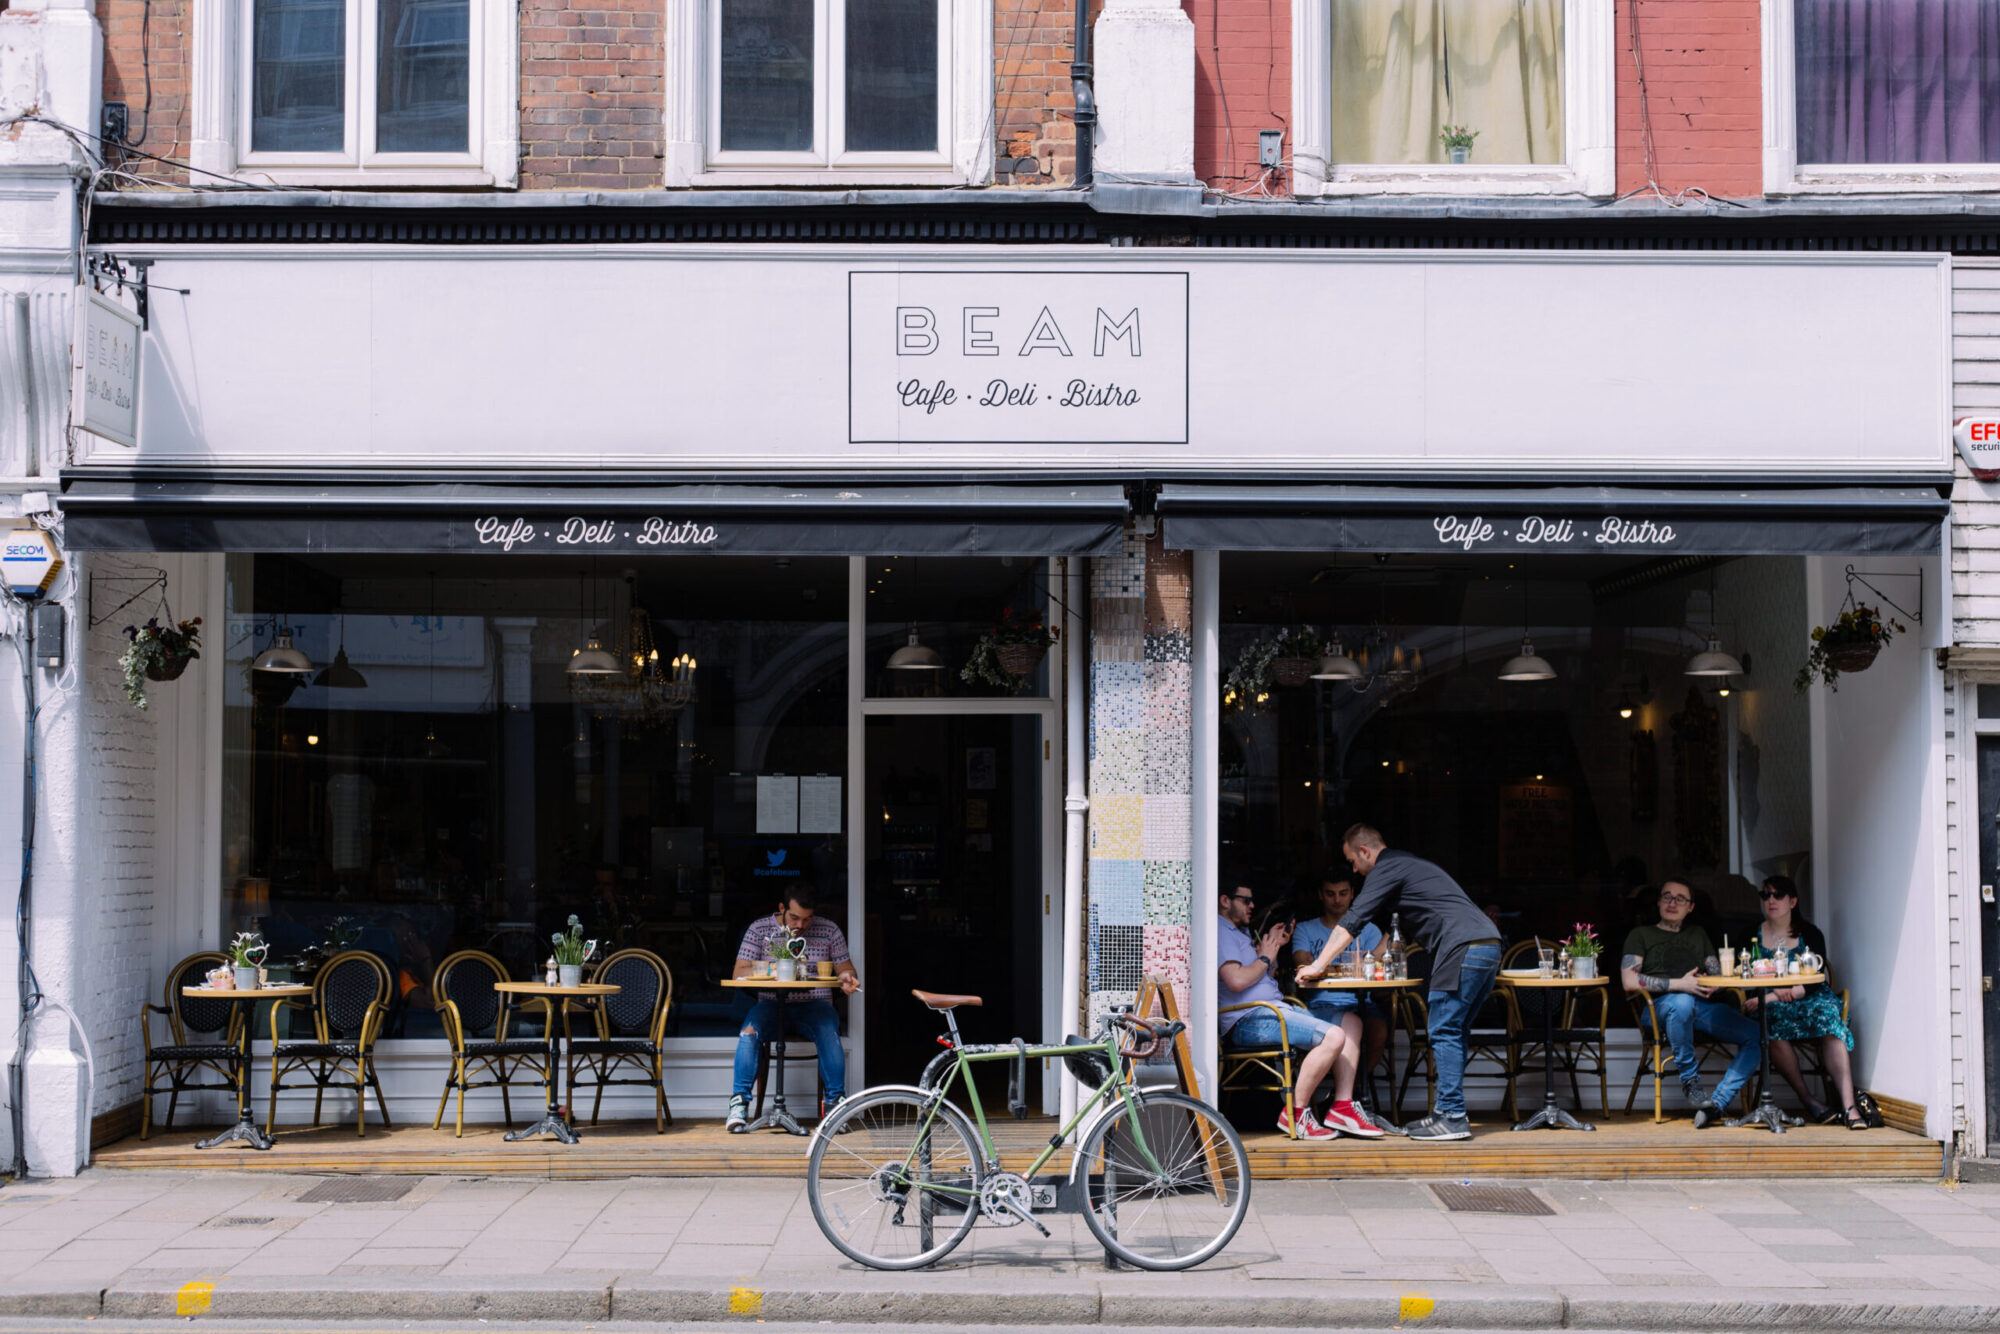 Beam, a local cafe in Crouch End.